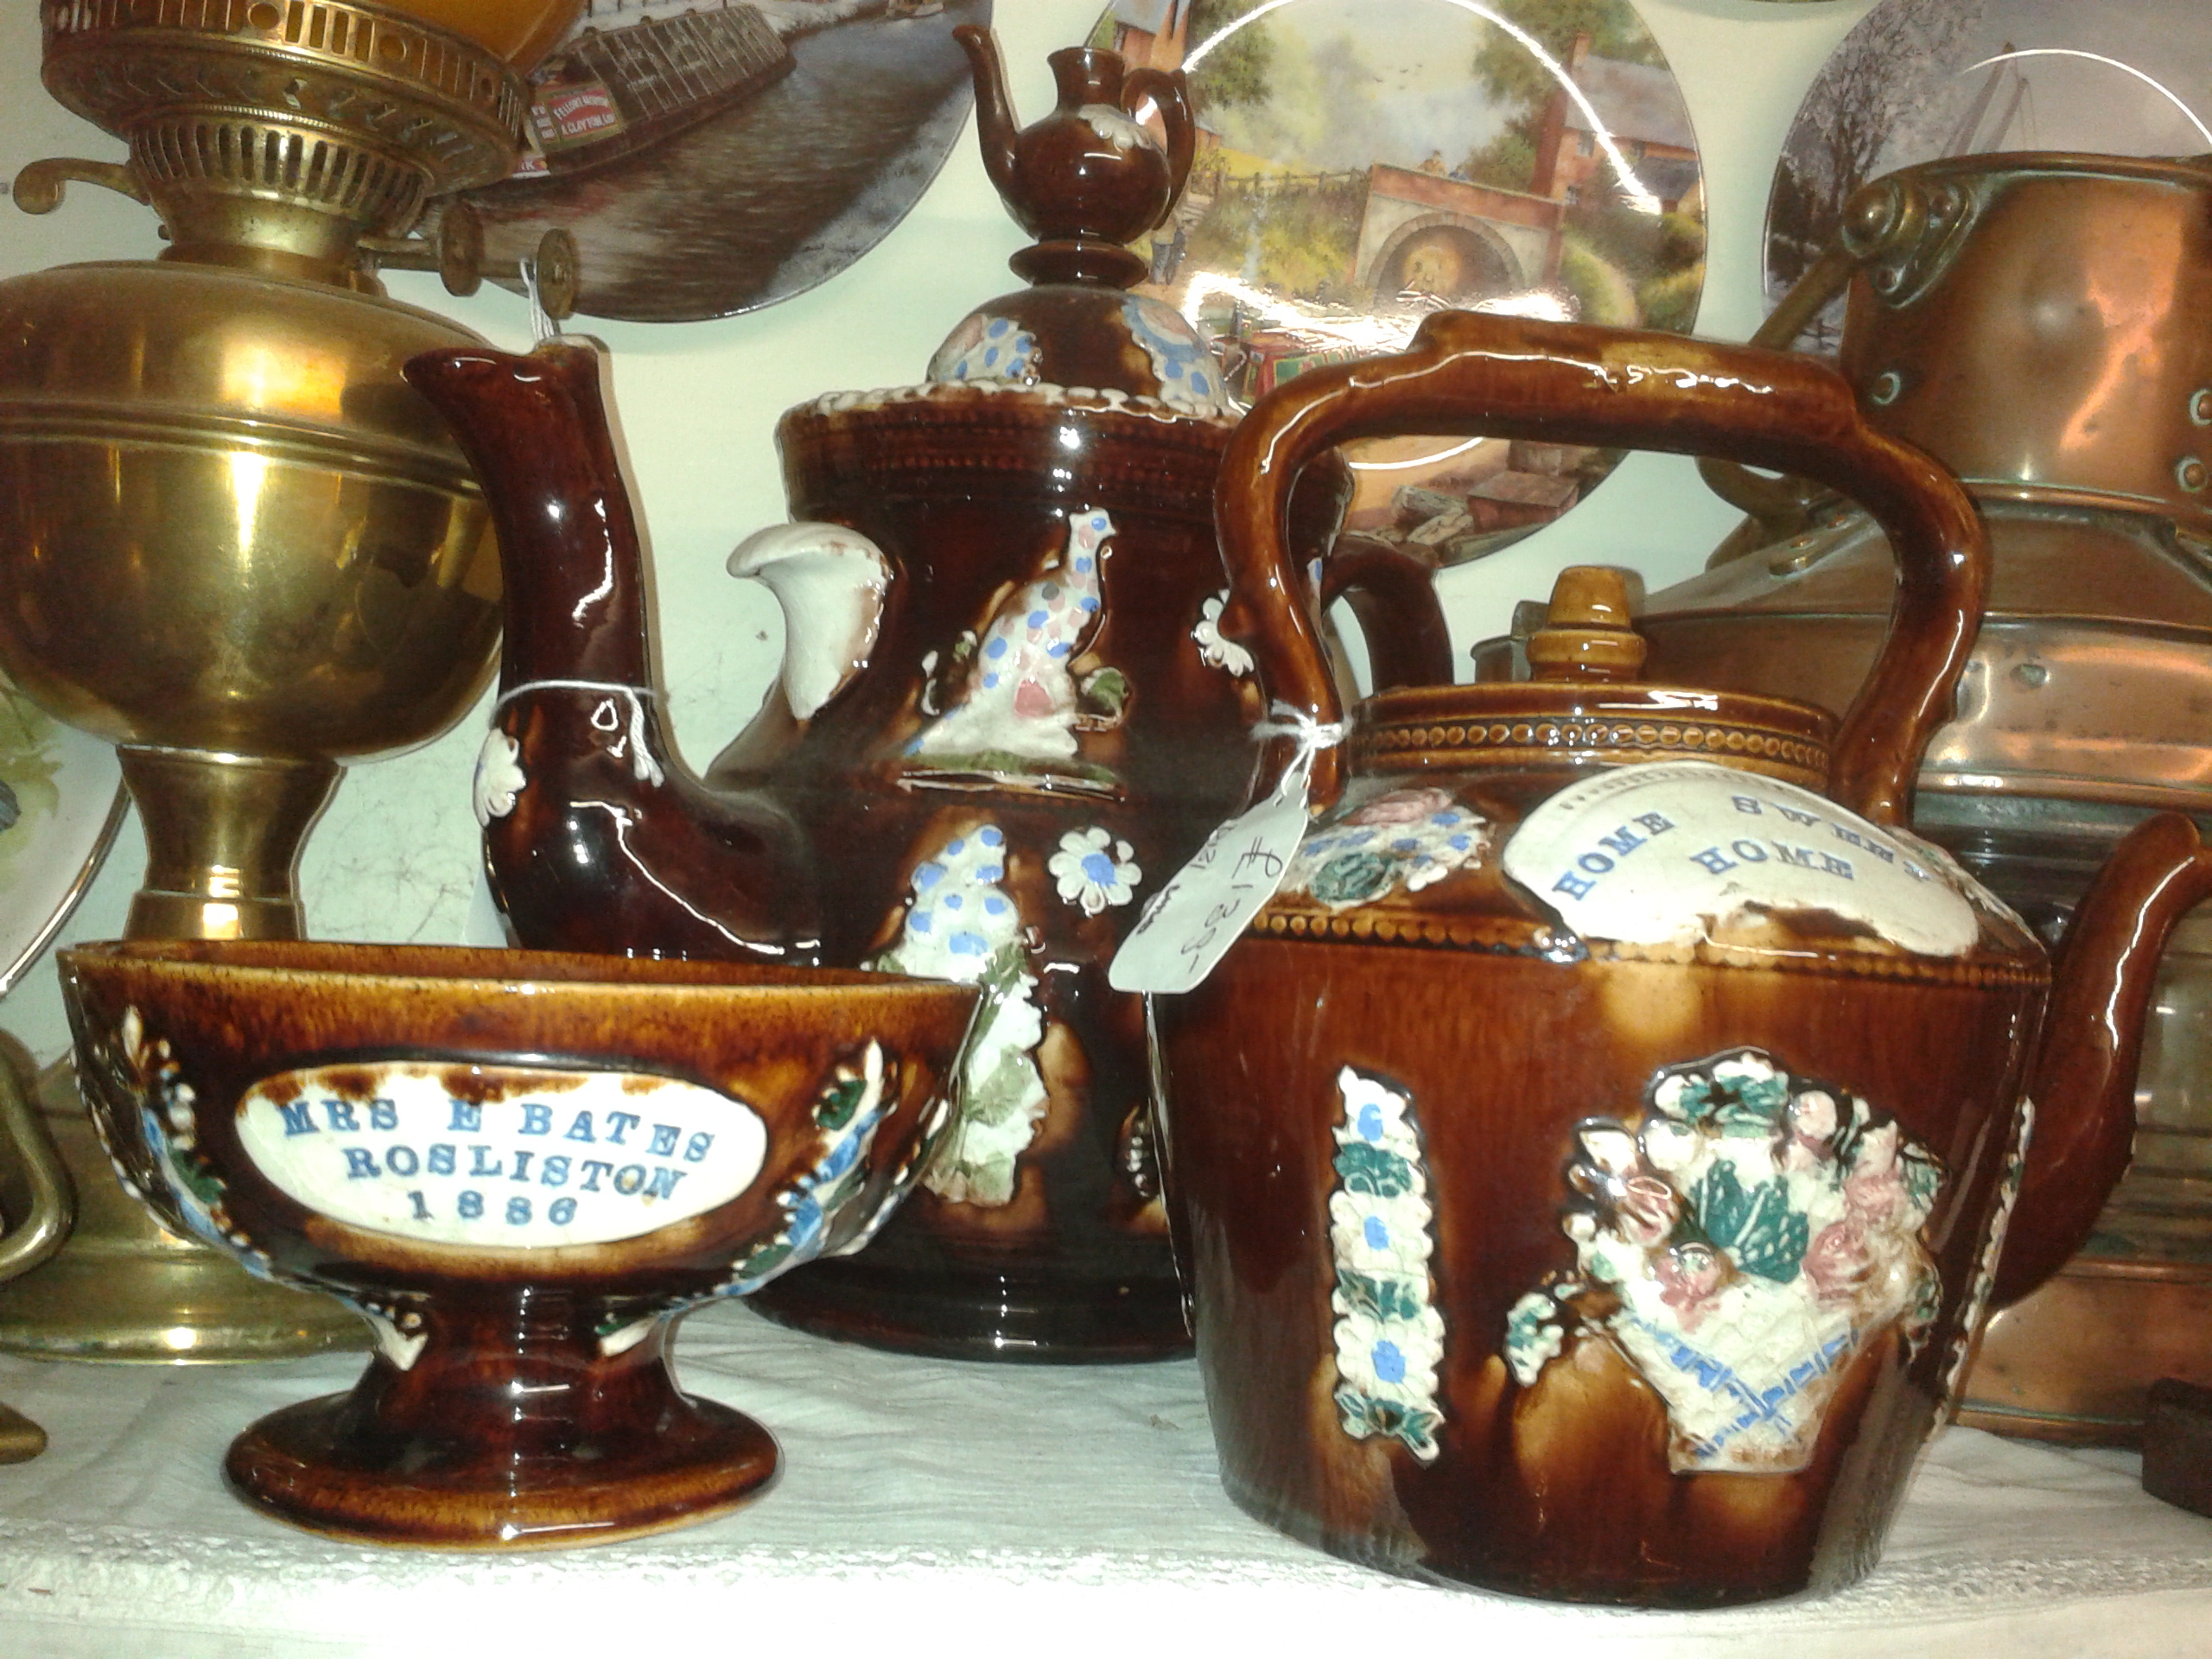 Original measham bargeware